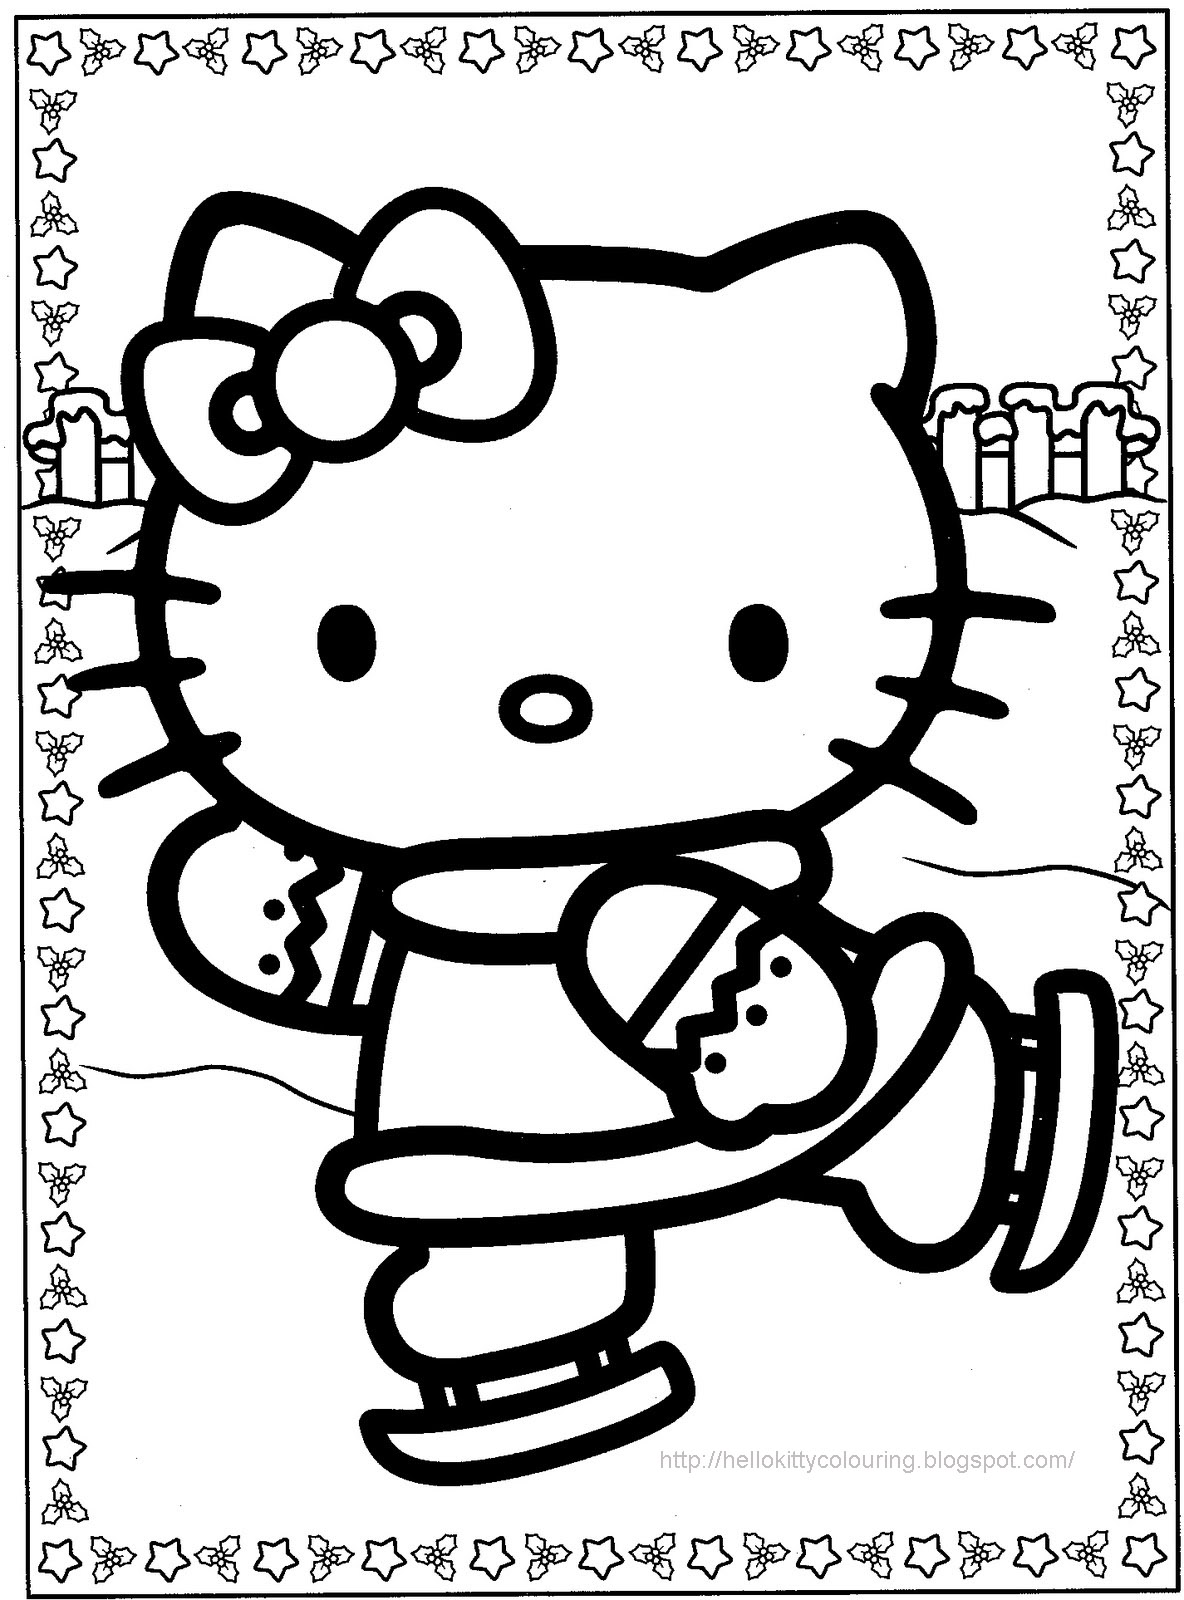 hello kitty coloring pages free printable hello kitty free to color for kids hello kitty kids pages printable coloring kitty hello free